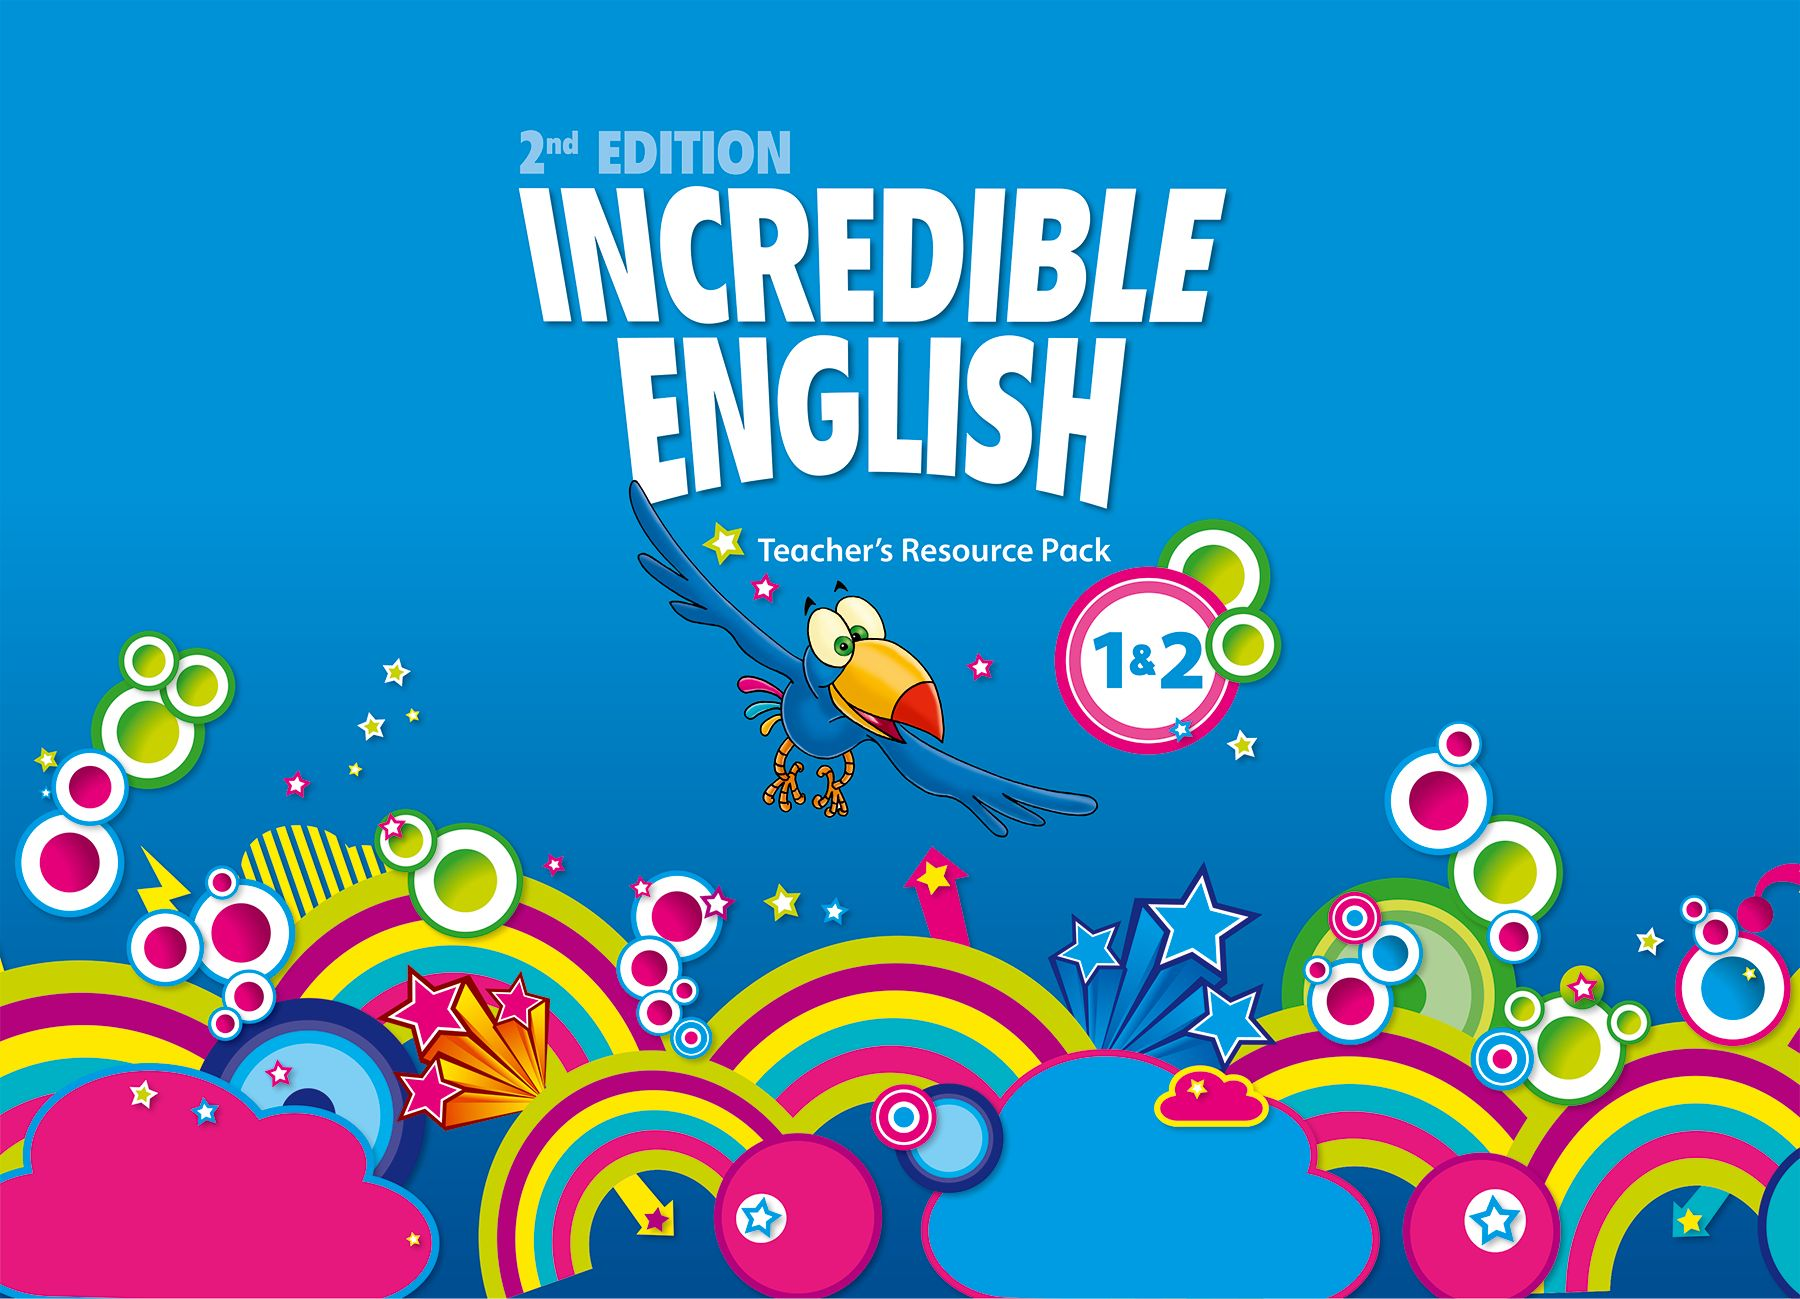 INCREDIBLE ENGLISHLISH 2E 1-2 TRP incredible englishlish 1 cl cd 2